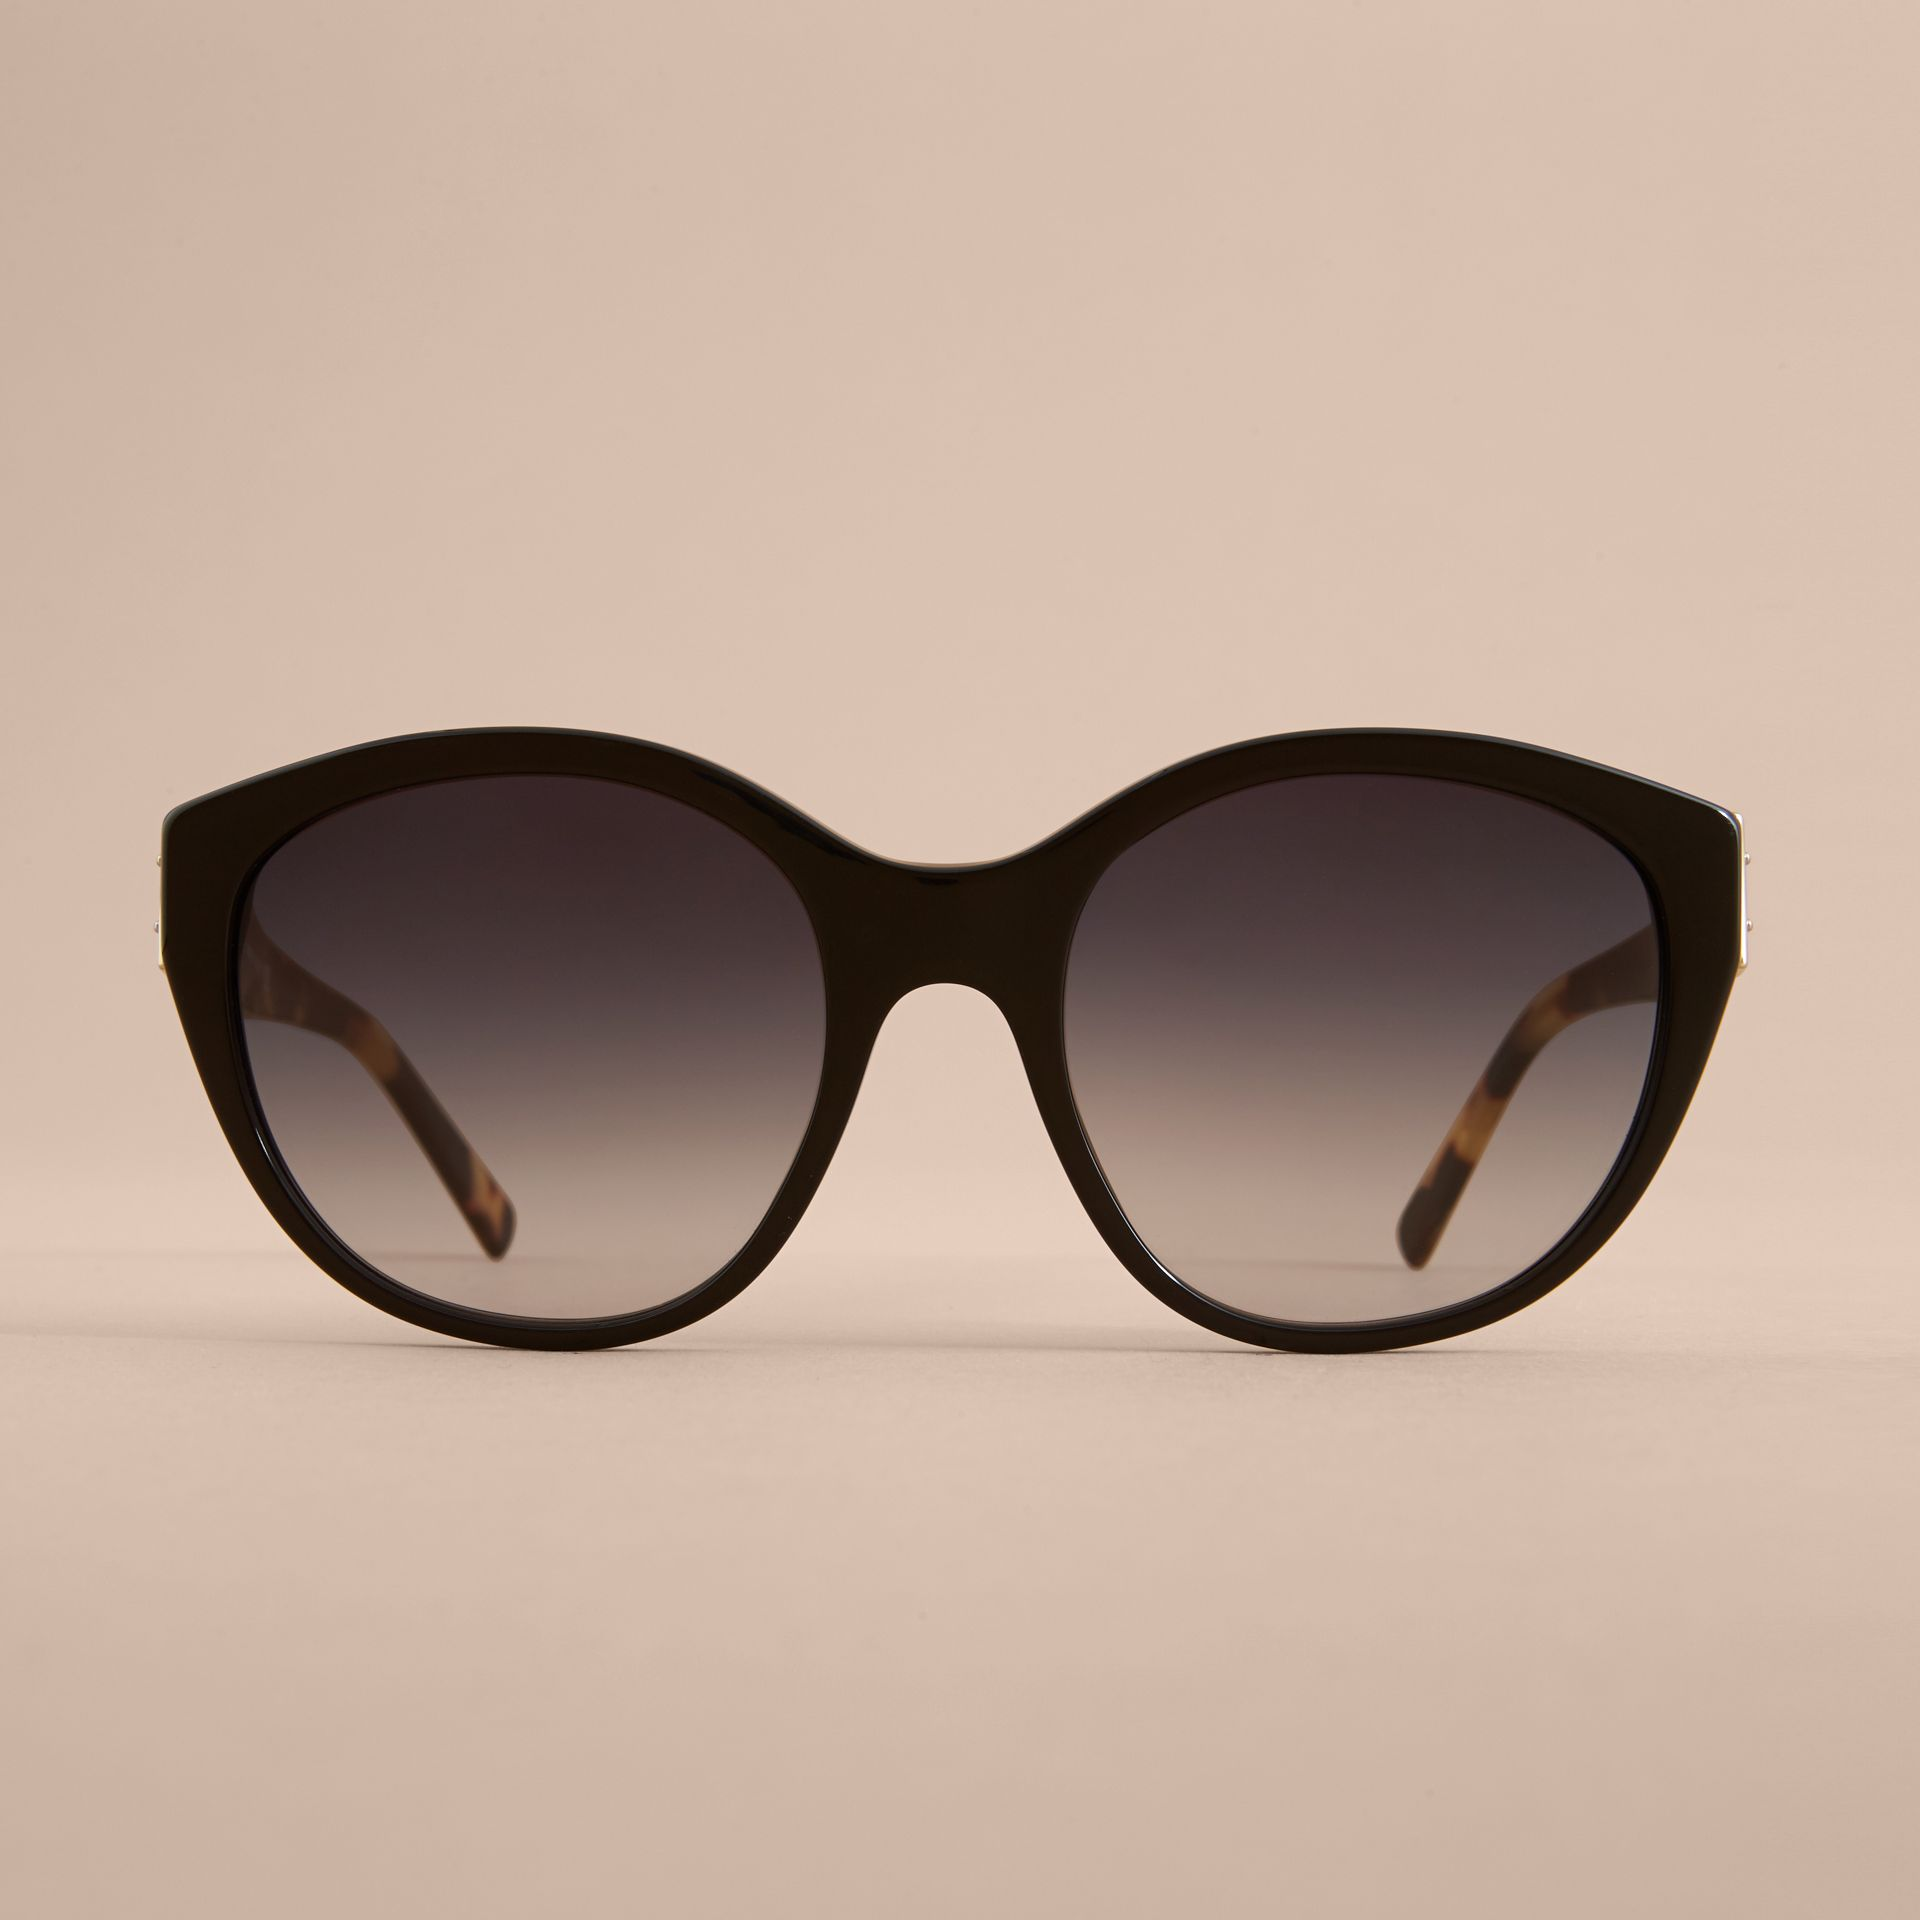 Buckle Detail Round Frame Sunglasses in Black - Women | Burberry - gallery image 2